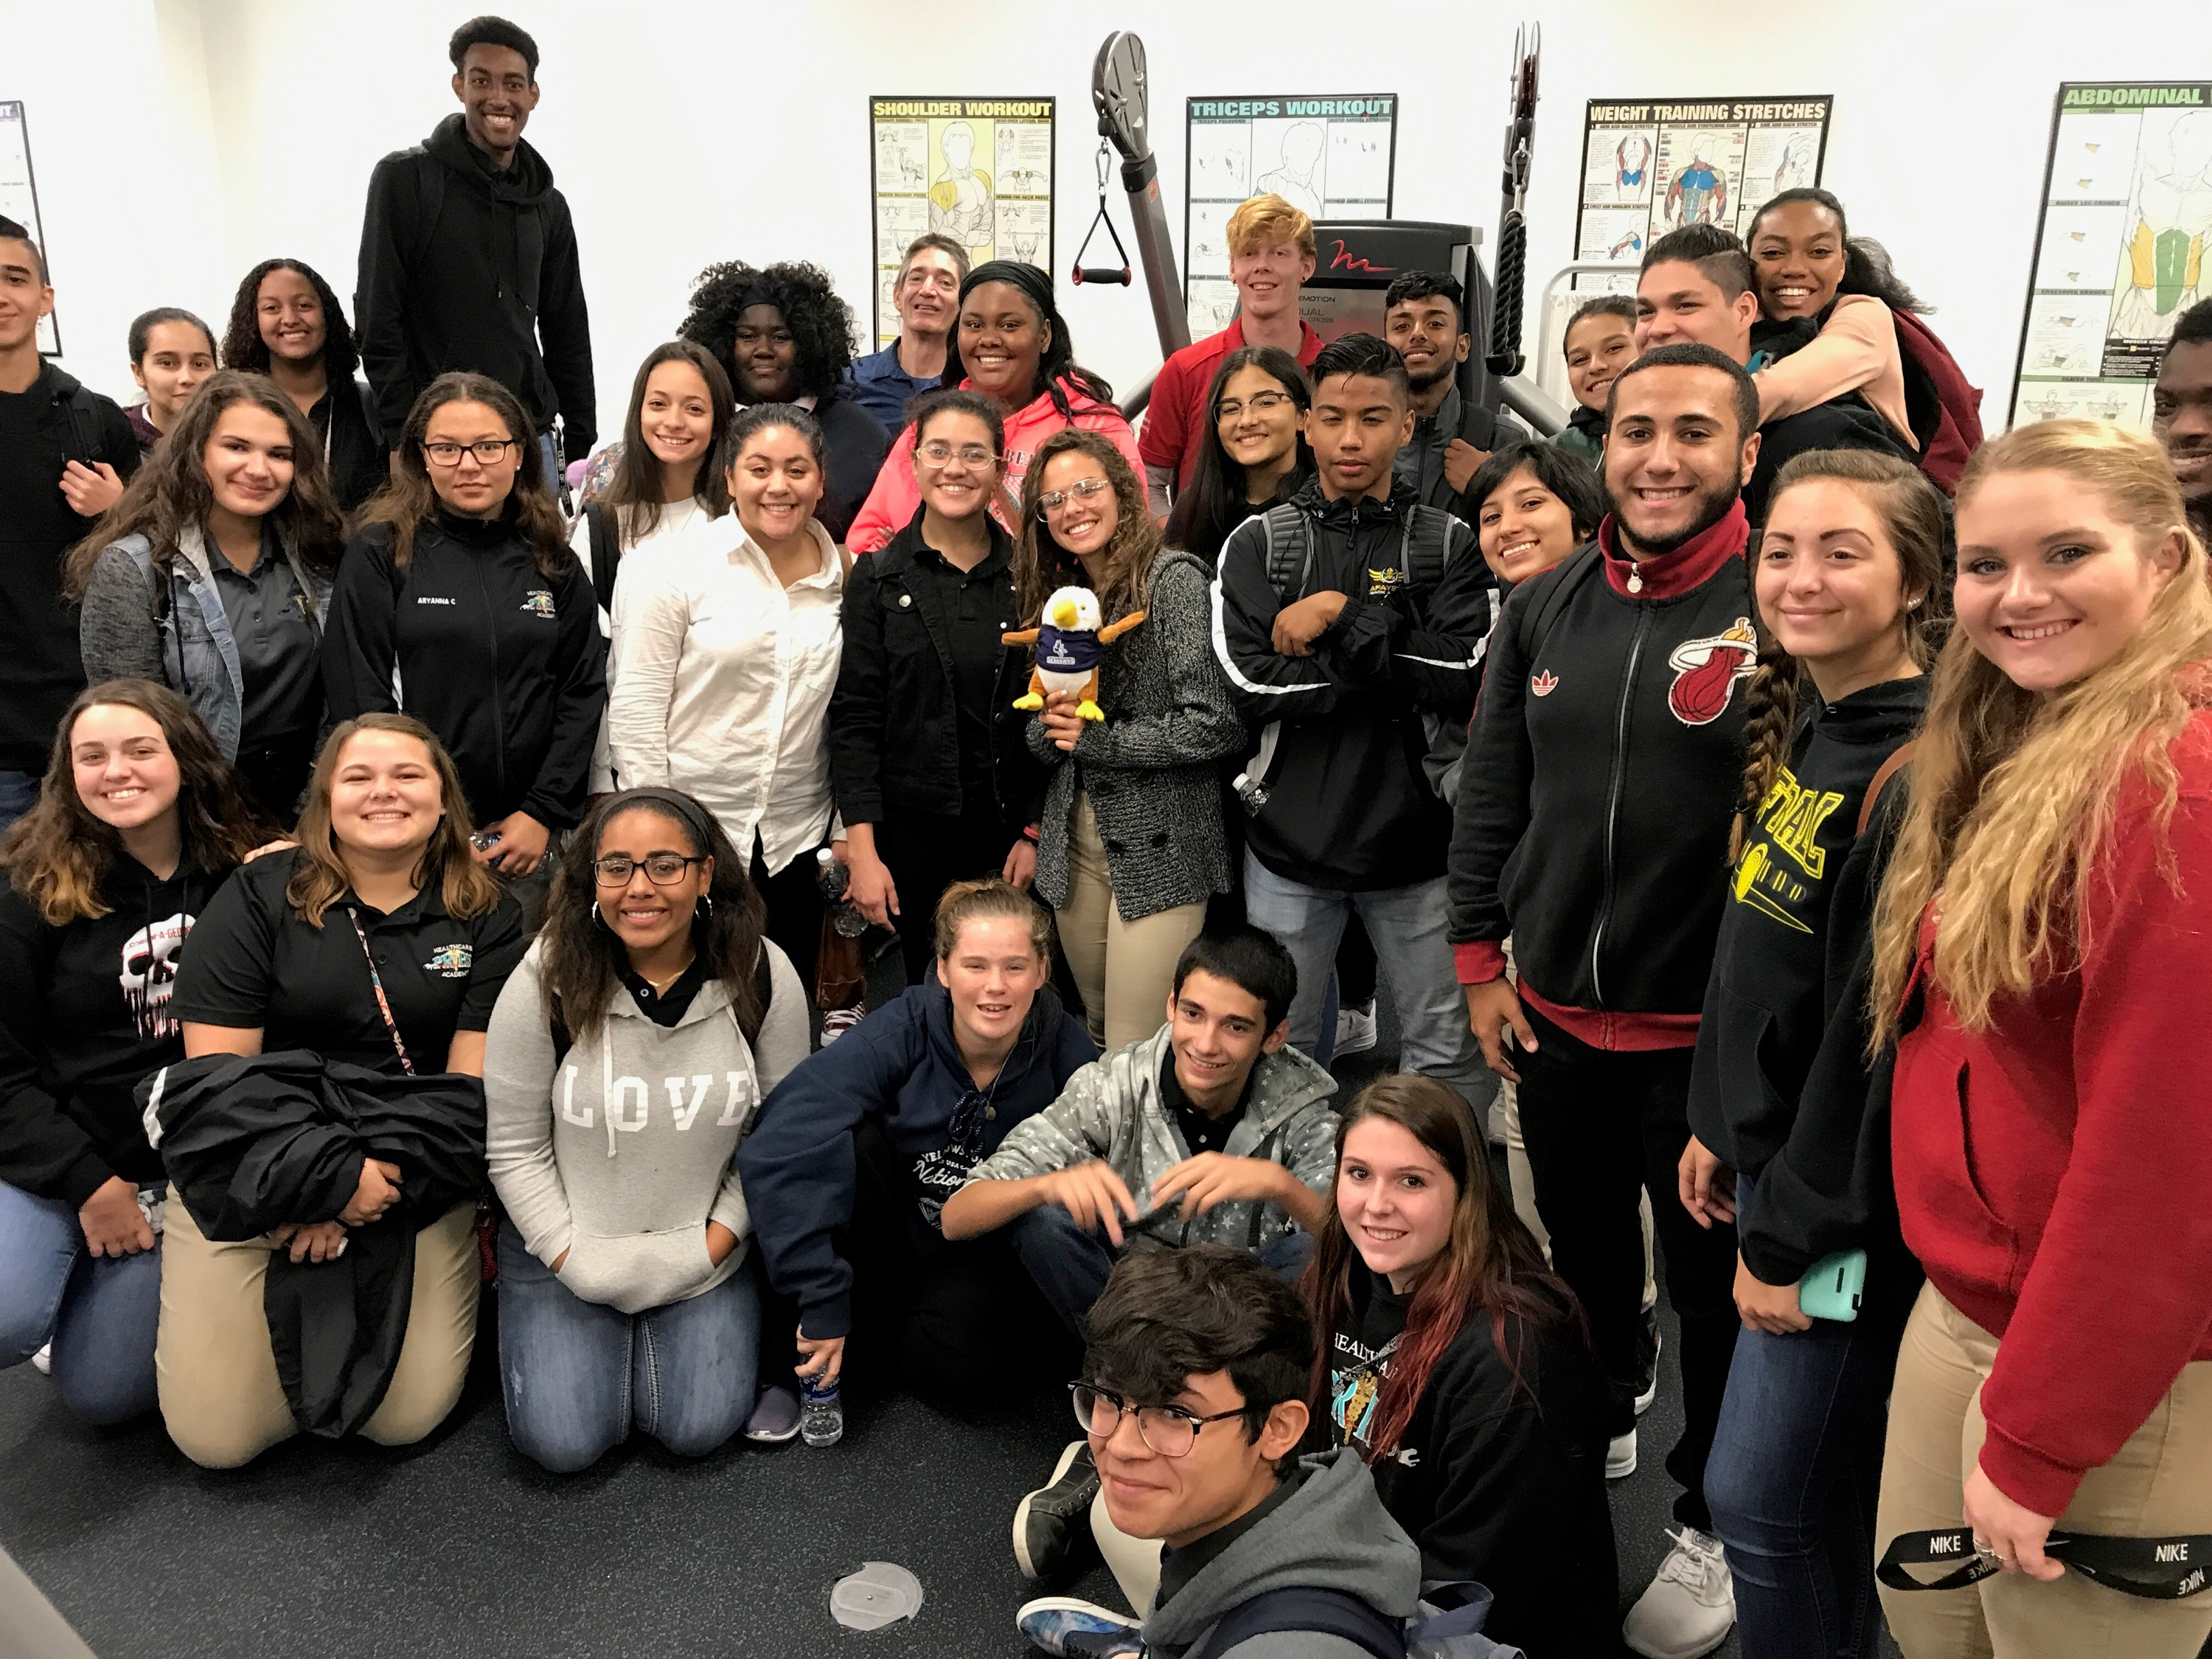 Pine Ridge High School's Health Academy Visits the Daytona Campus